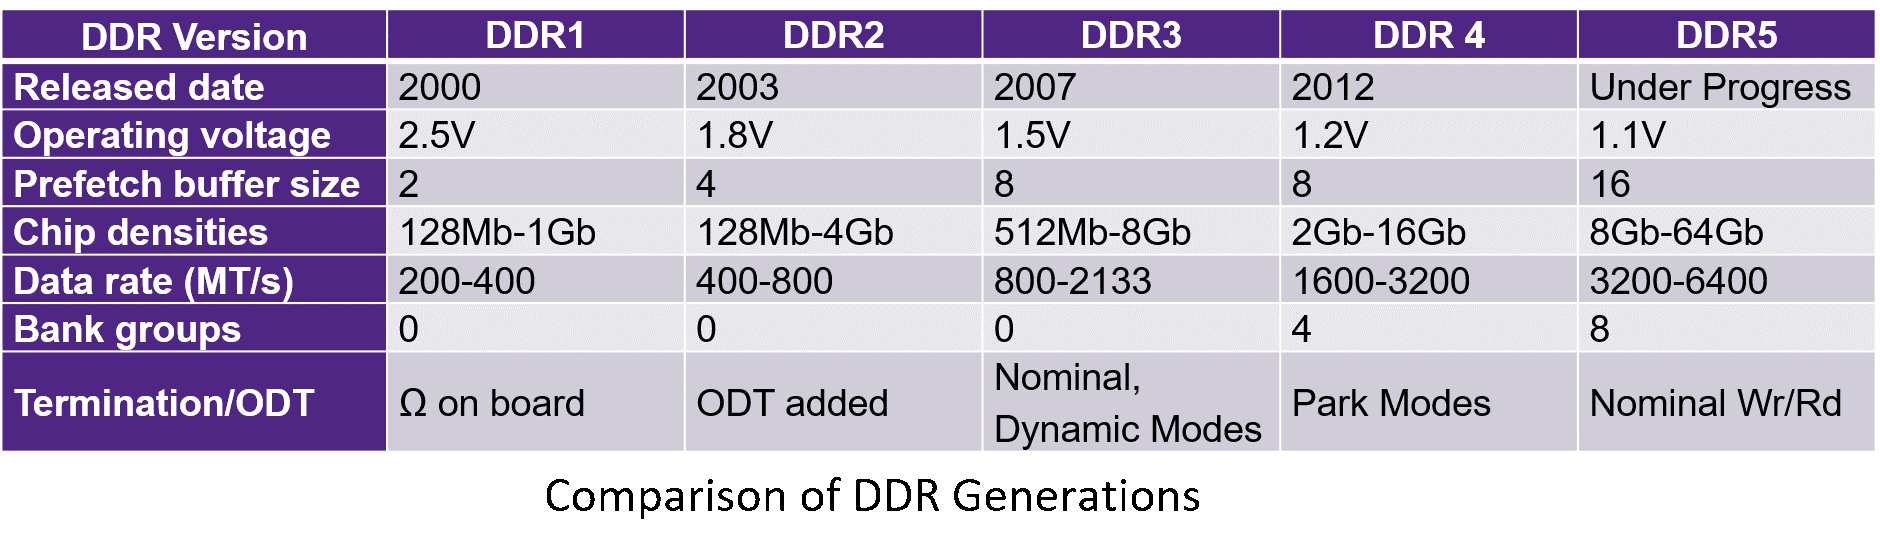 DDR5 – Off and Running